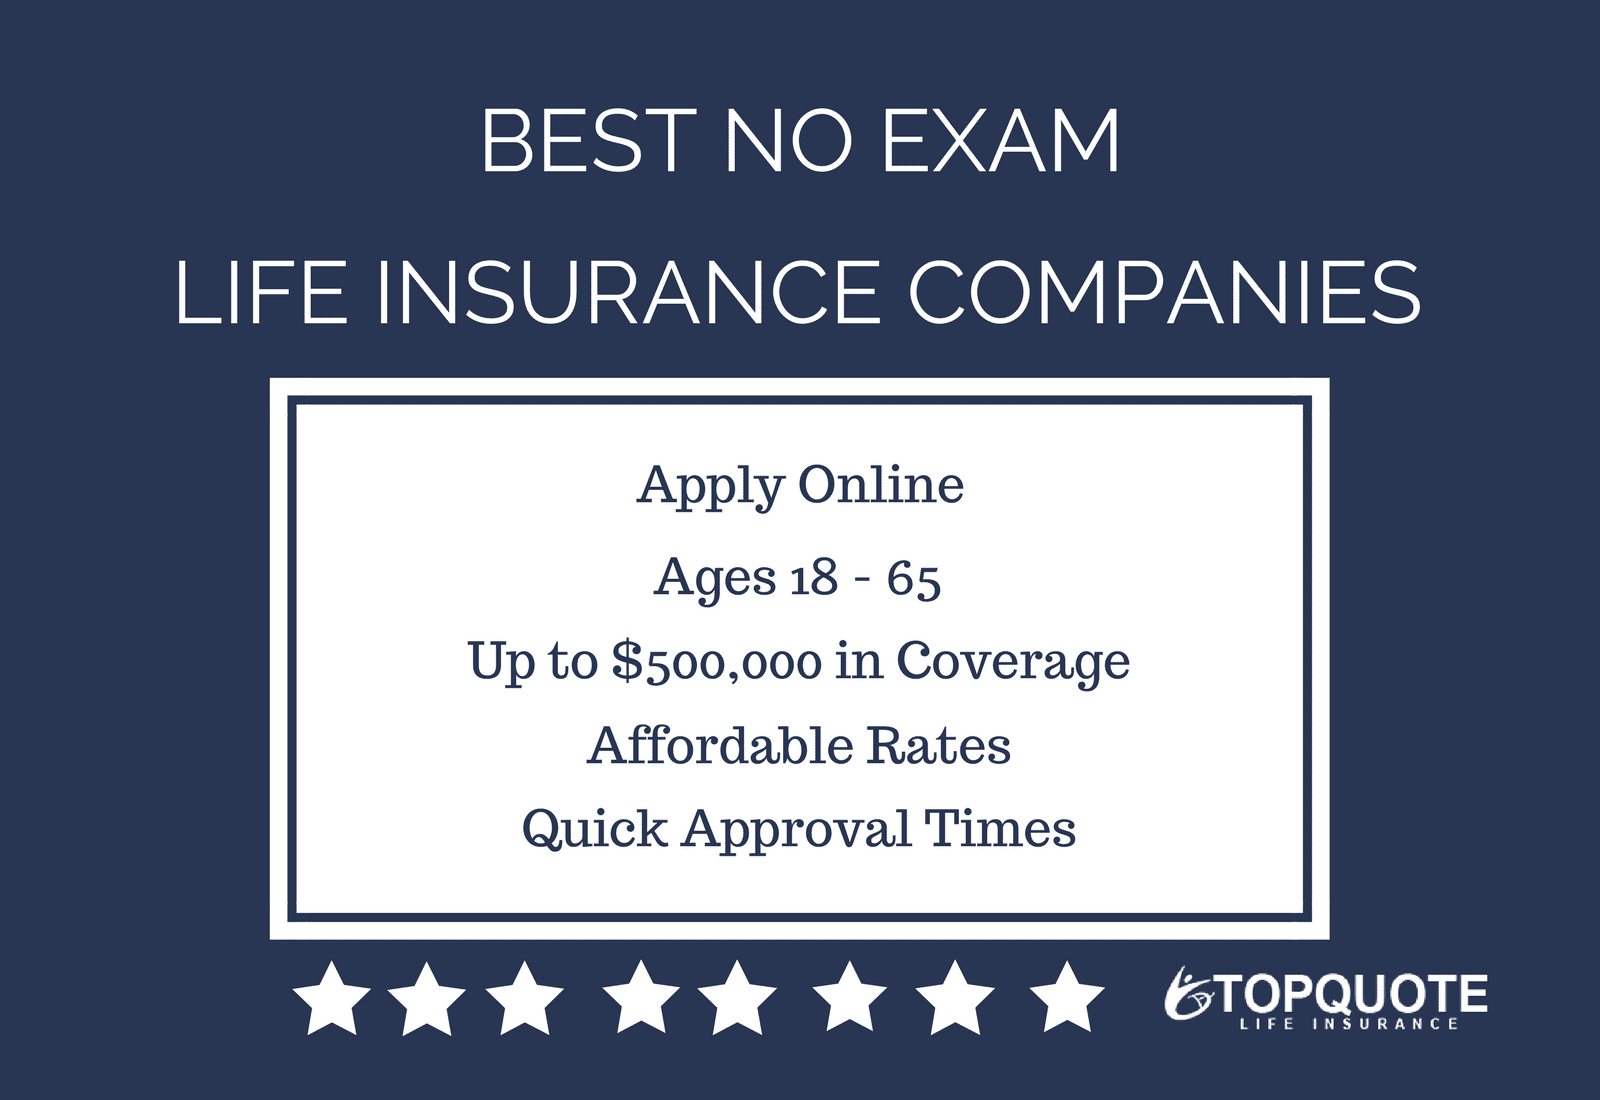 Online Quote For Life Insurance Fascinating Best Instant Approval No Exam Life Insurance Quotes